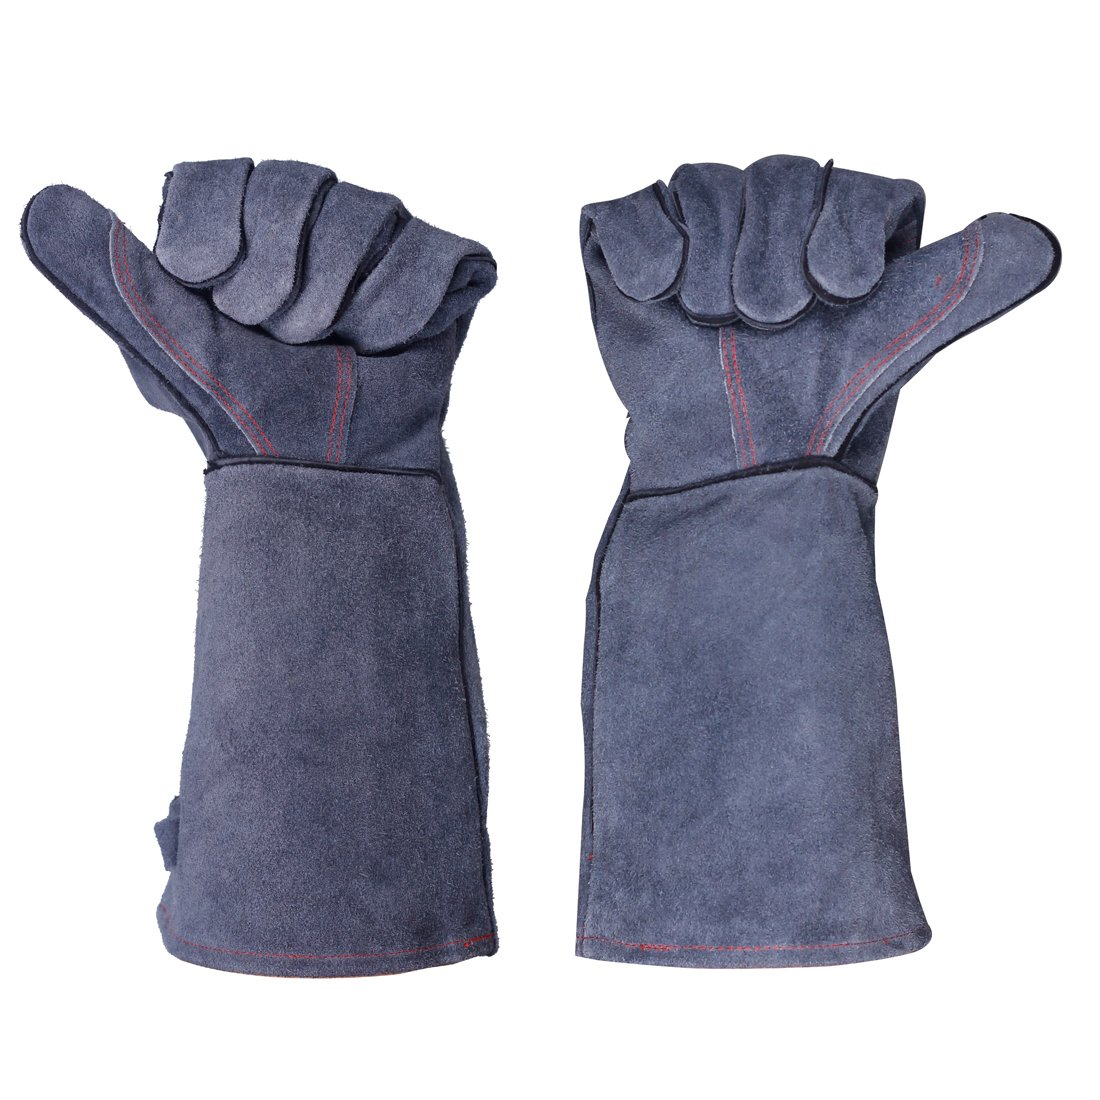 Dltsli Leather Oven Grill BBQ Gloves 662F(350C) Forge Welding Gloves Extreme Heat Resistant Cooking Baking Barbecue Fireplace Grilling Glove Mitts Unisex Long Welding Gloves Sleeves